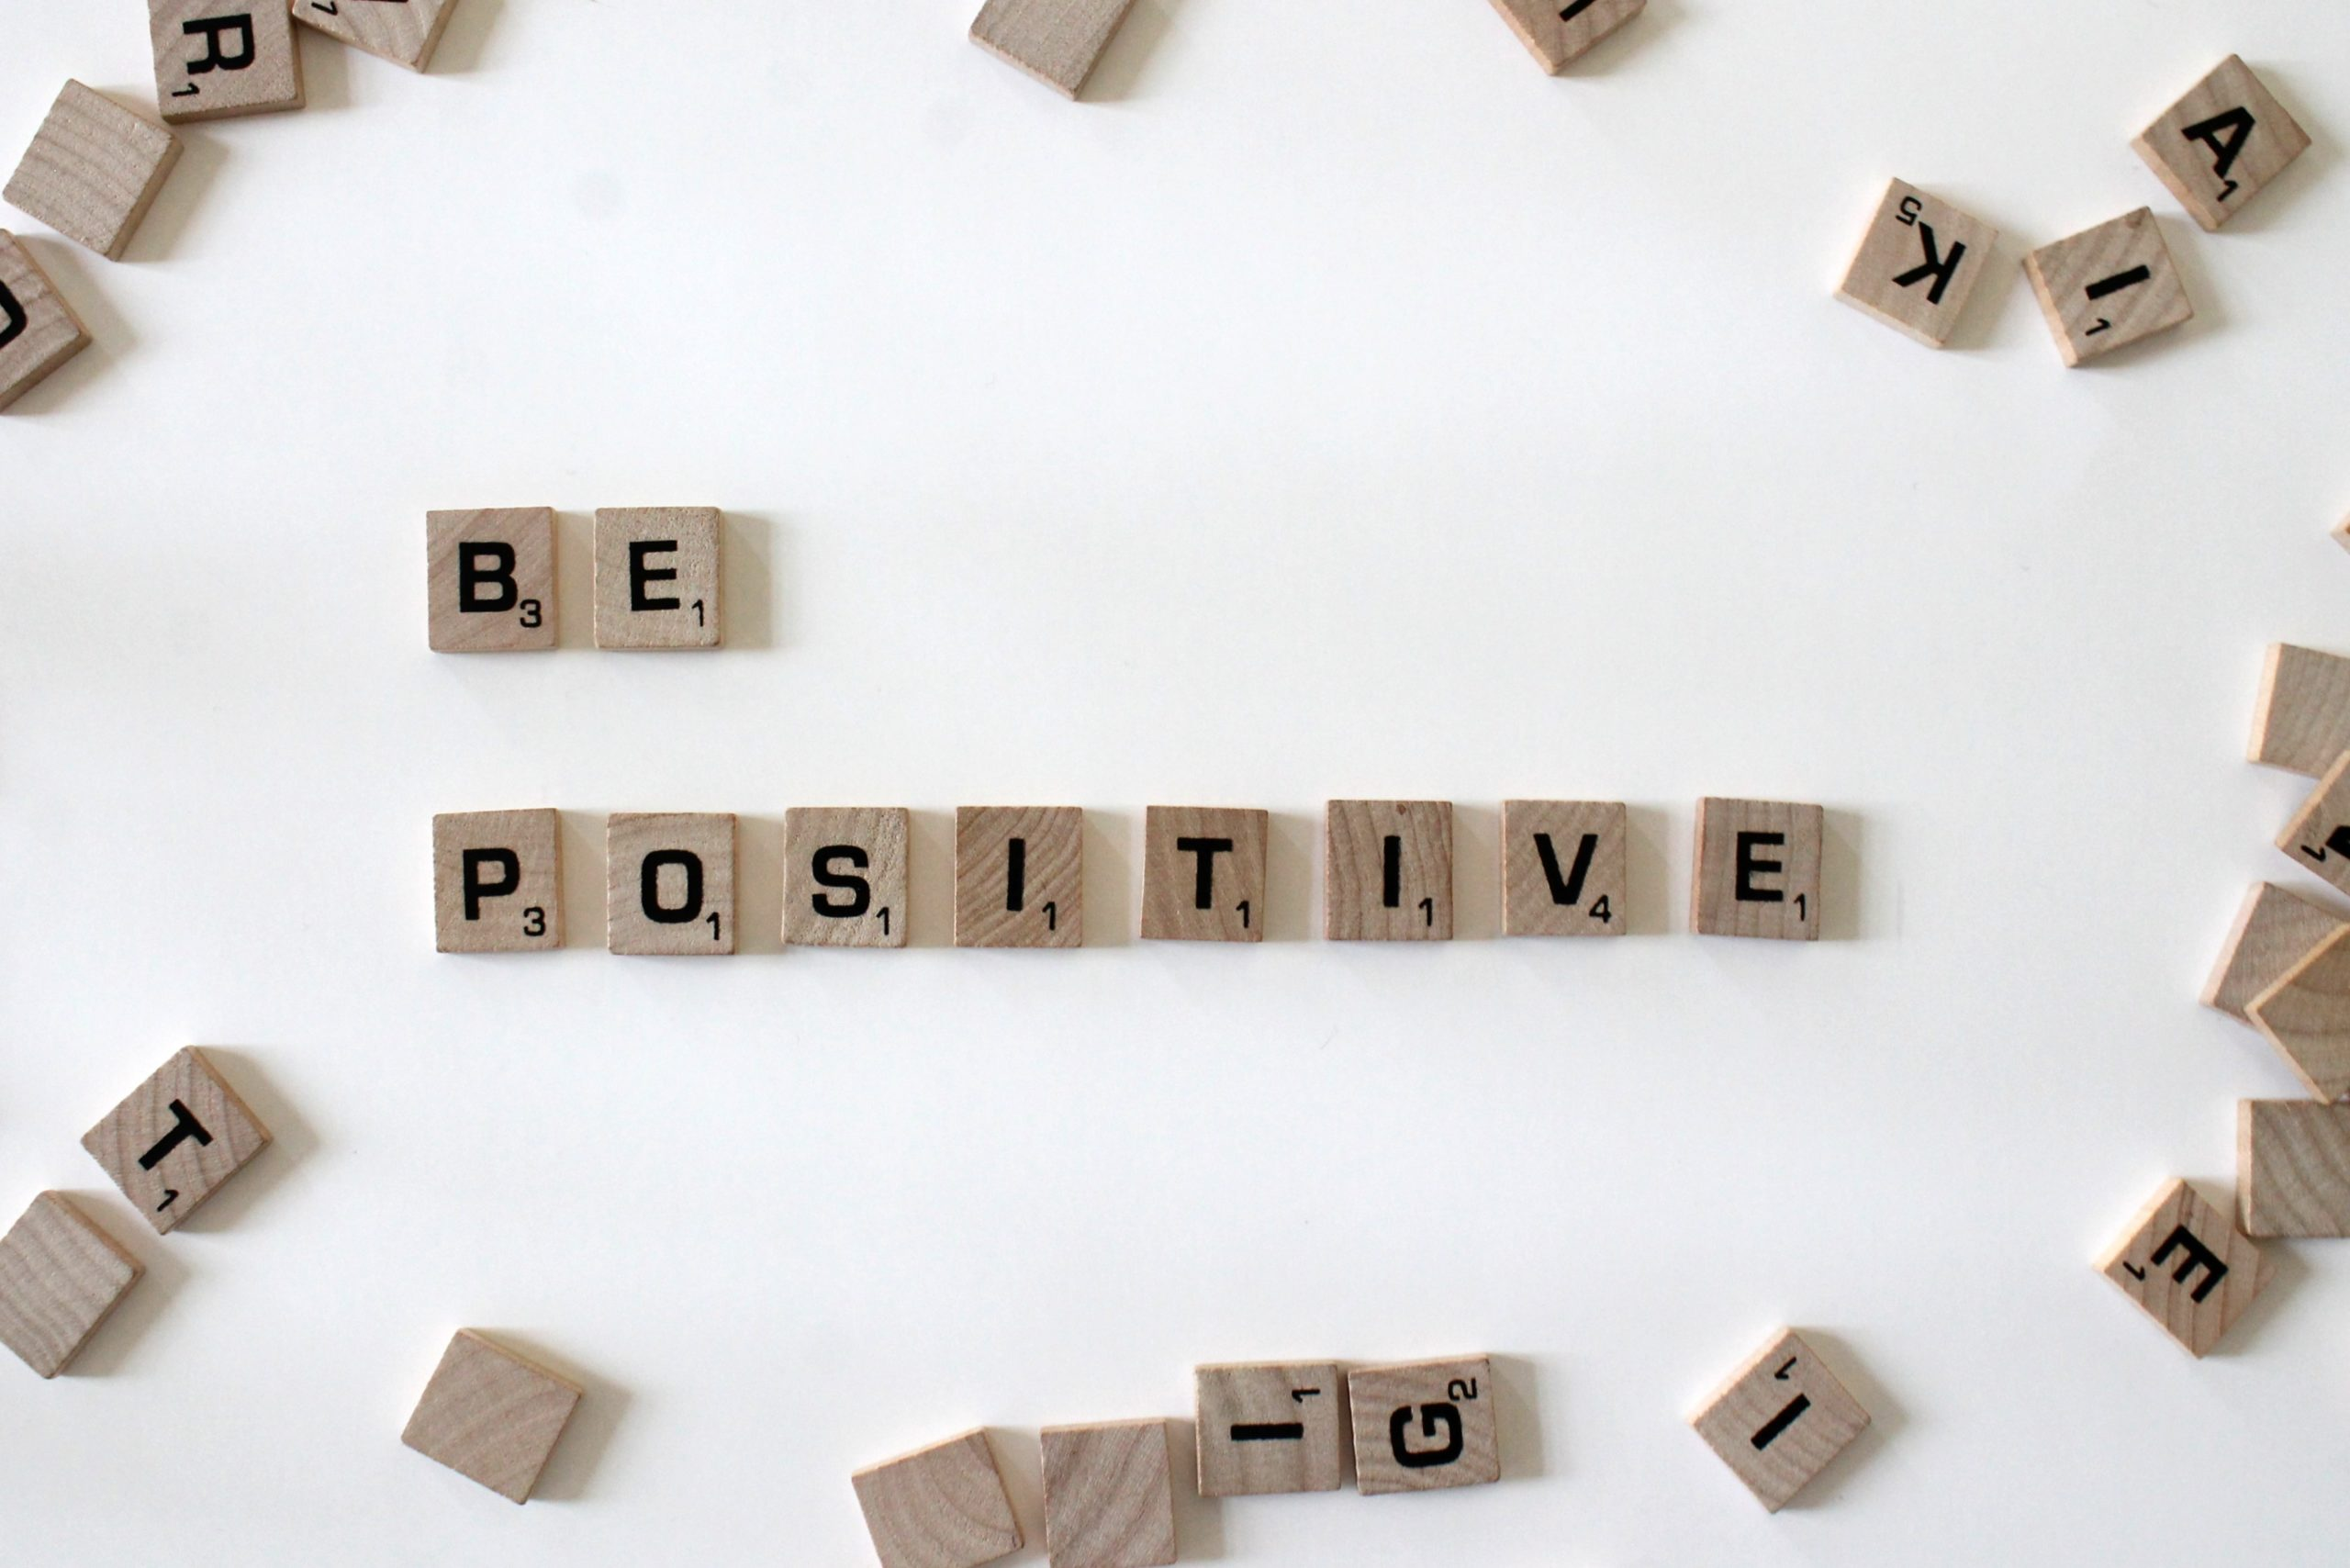 Scramble tiles spelling out be positive |Be positive